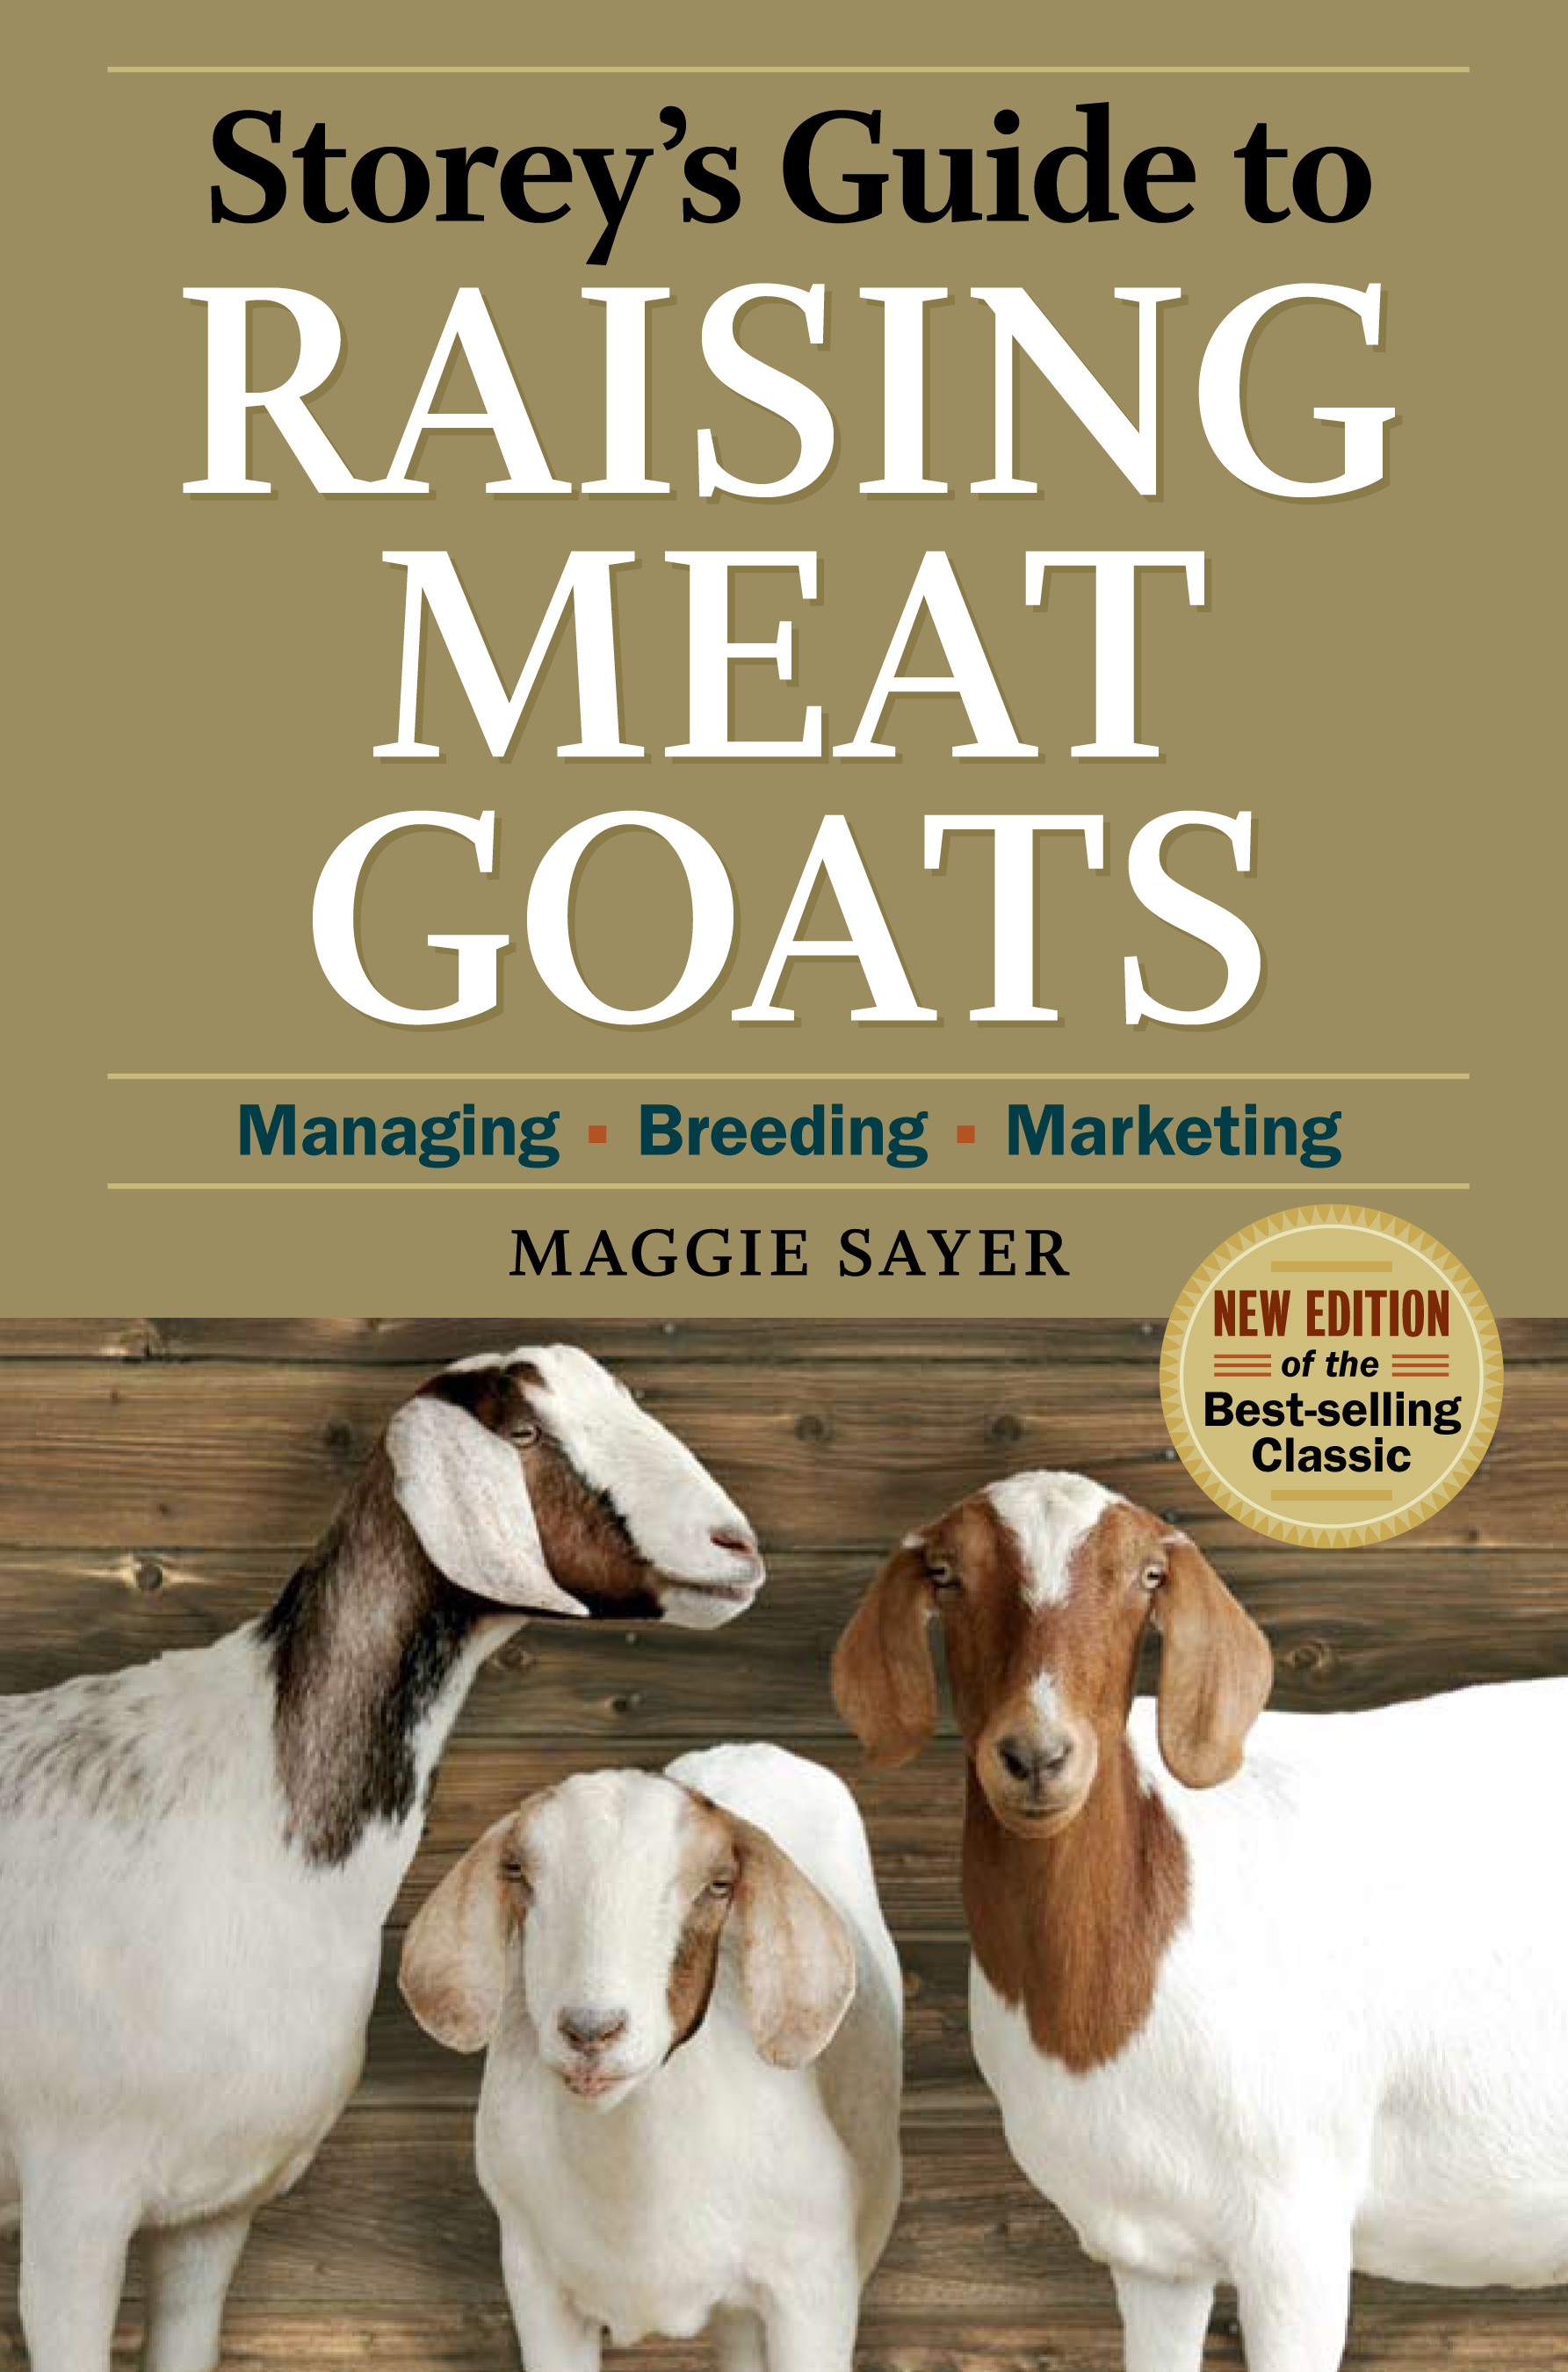 Storey's Guide to Raising Meat Goats, 2nd Edition Managing, Breeding, Marketing - Maggie Sayer